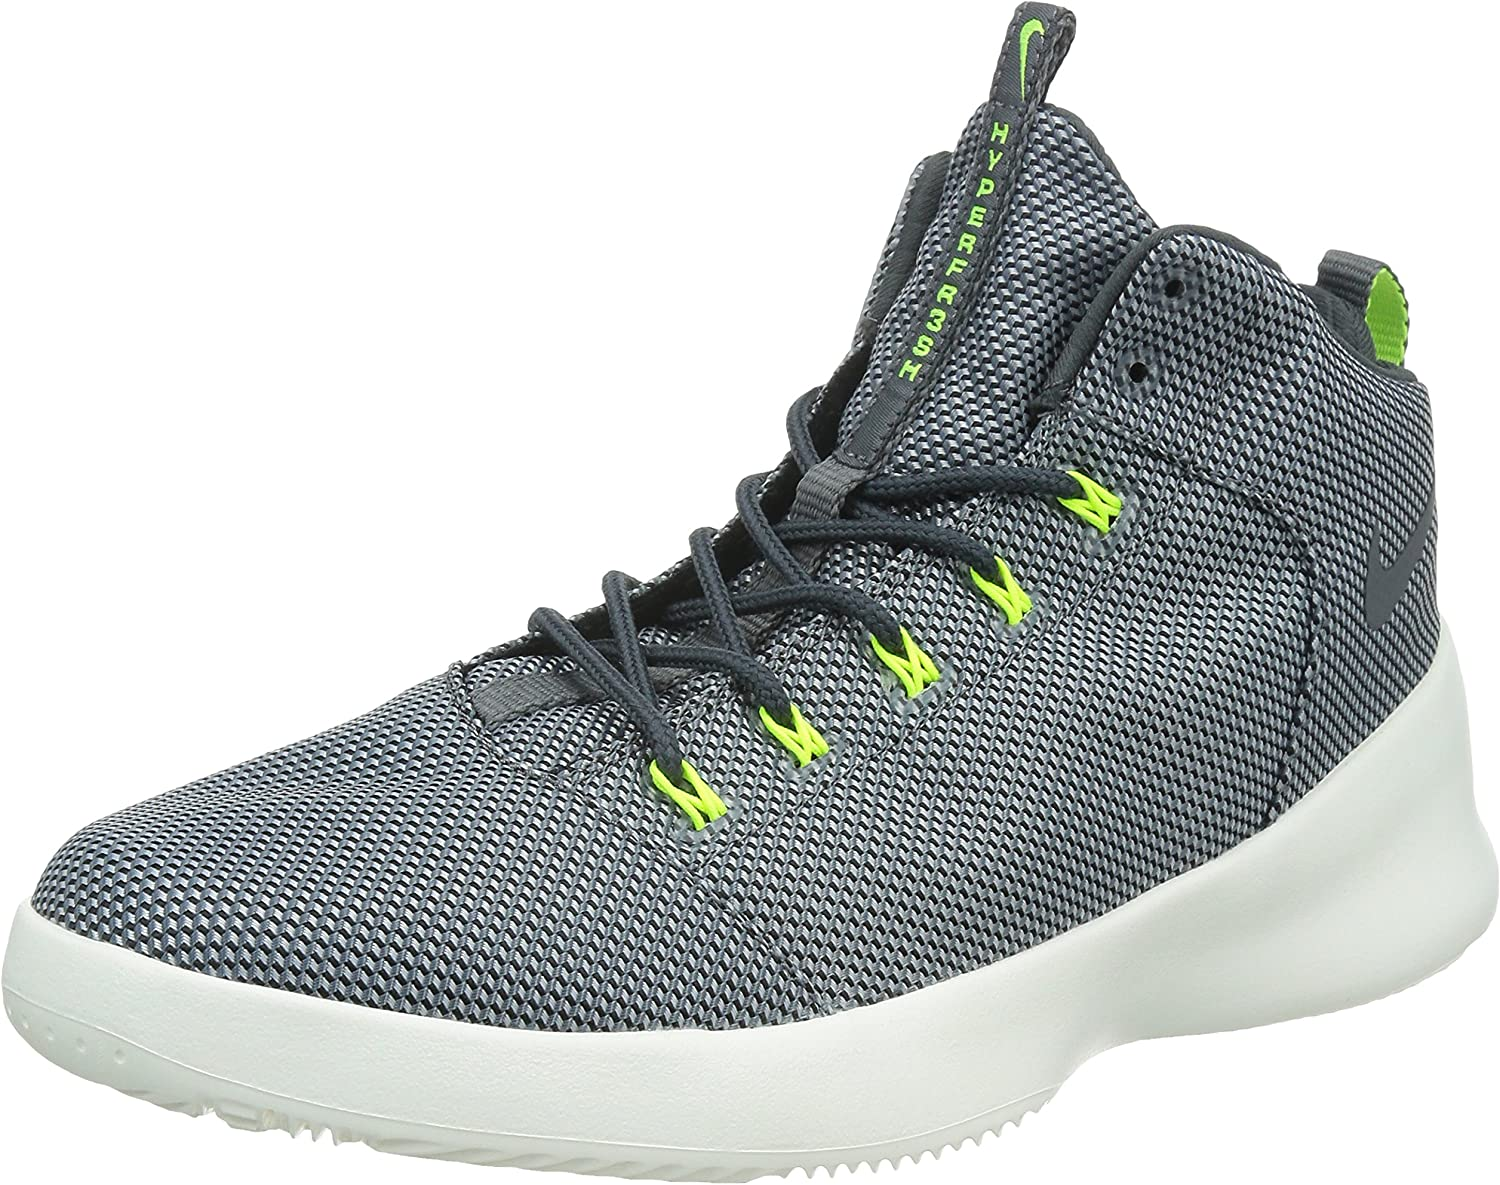 Trainers hyperfr3sh in, in, in, Grey, 9 5 UK 218f4d - mblay